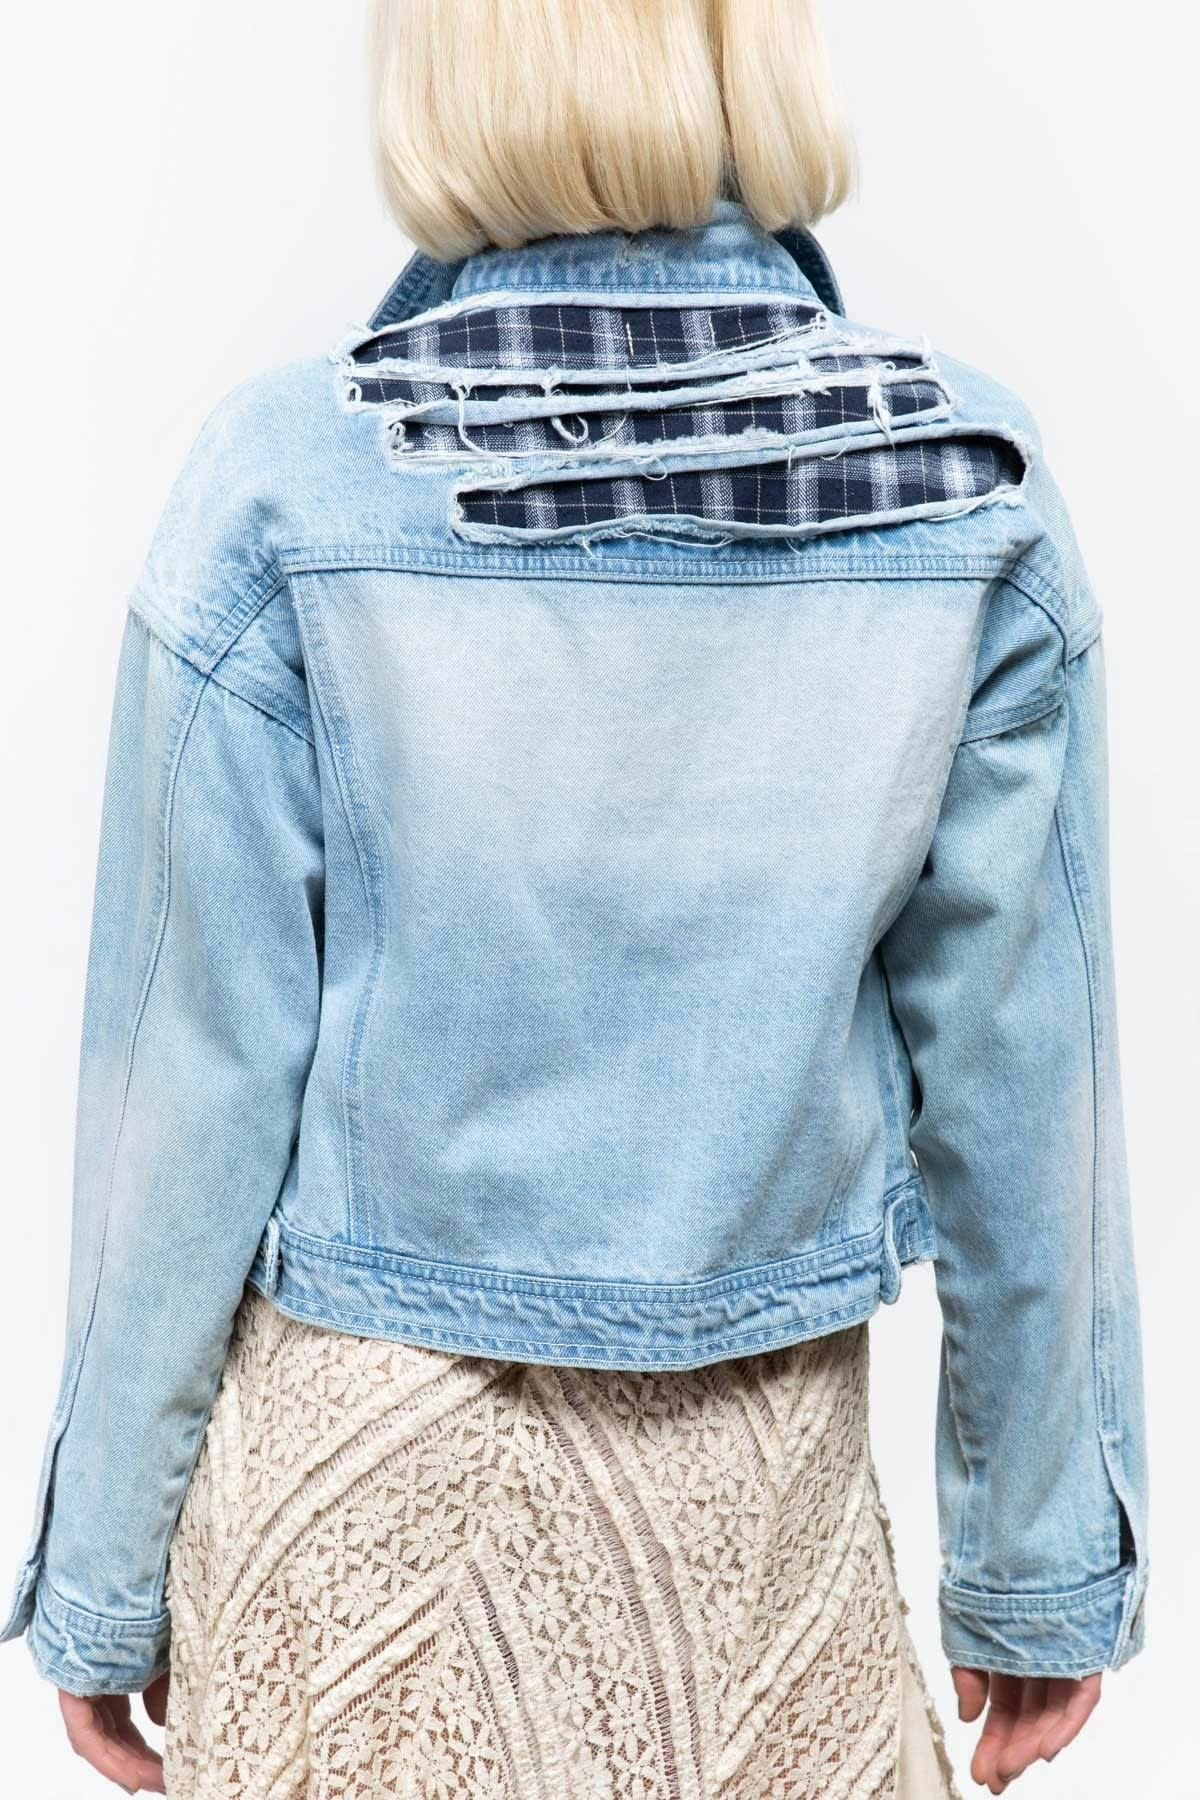 run shoes shades of huge selection of DISTRESSED DENIM JACKET W/PLAID AND RIPPED DETAIL